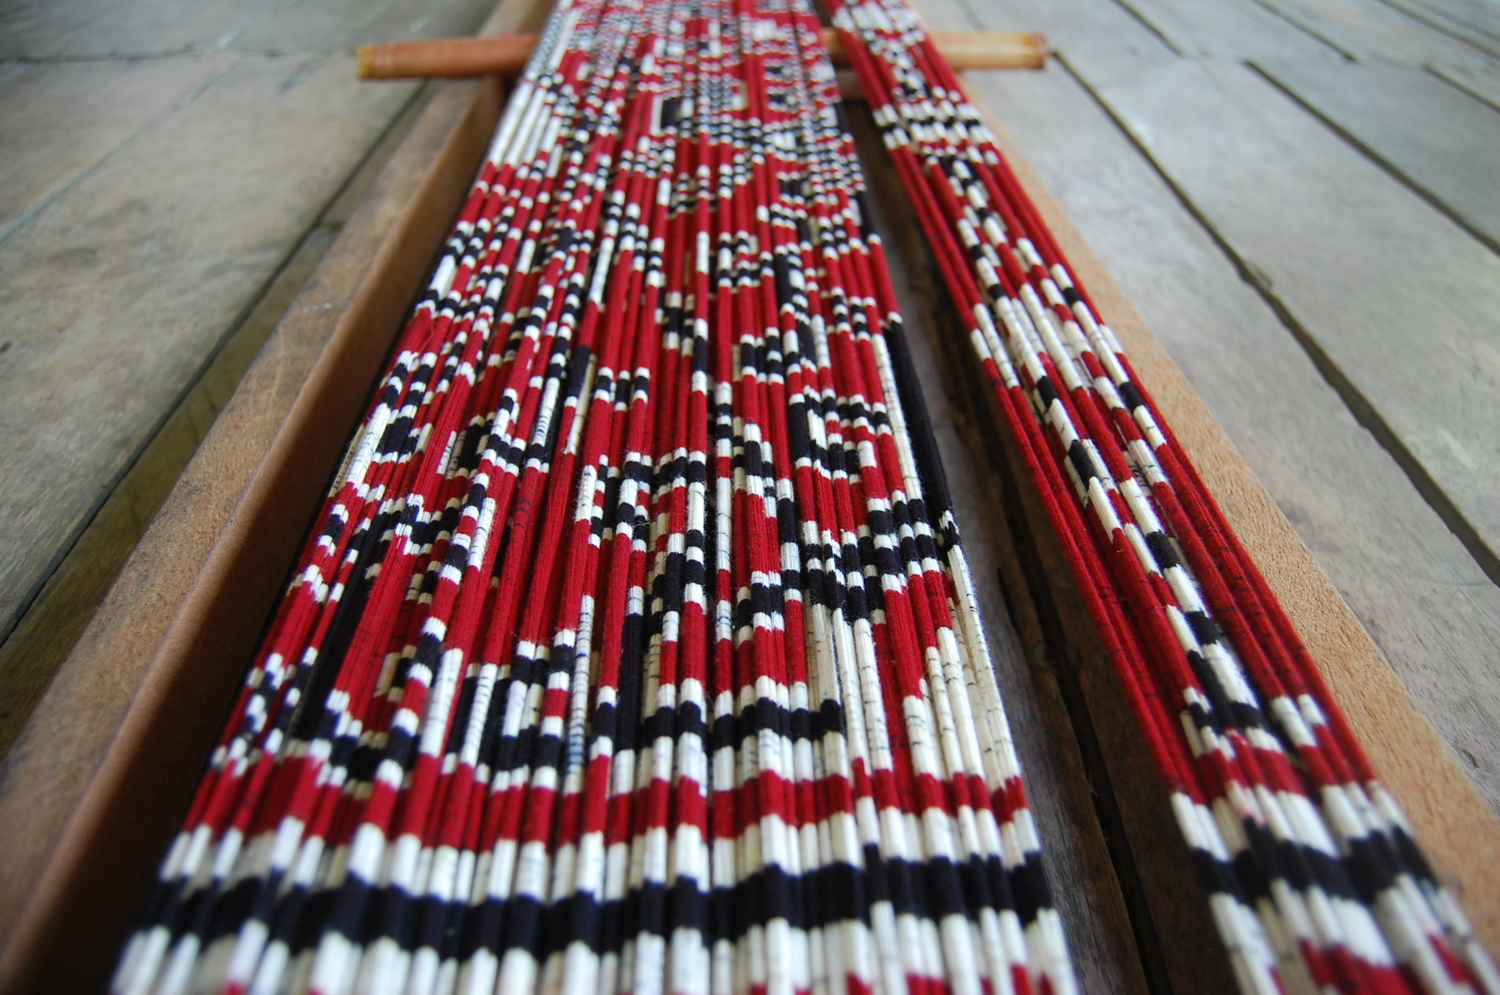 the-peoples-fabric-borneo-ikat-women-weaving.jpg